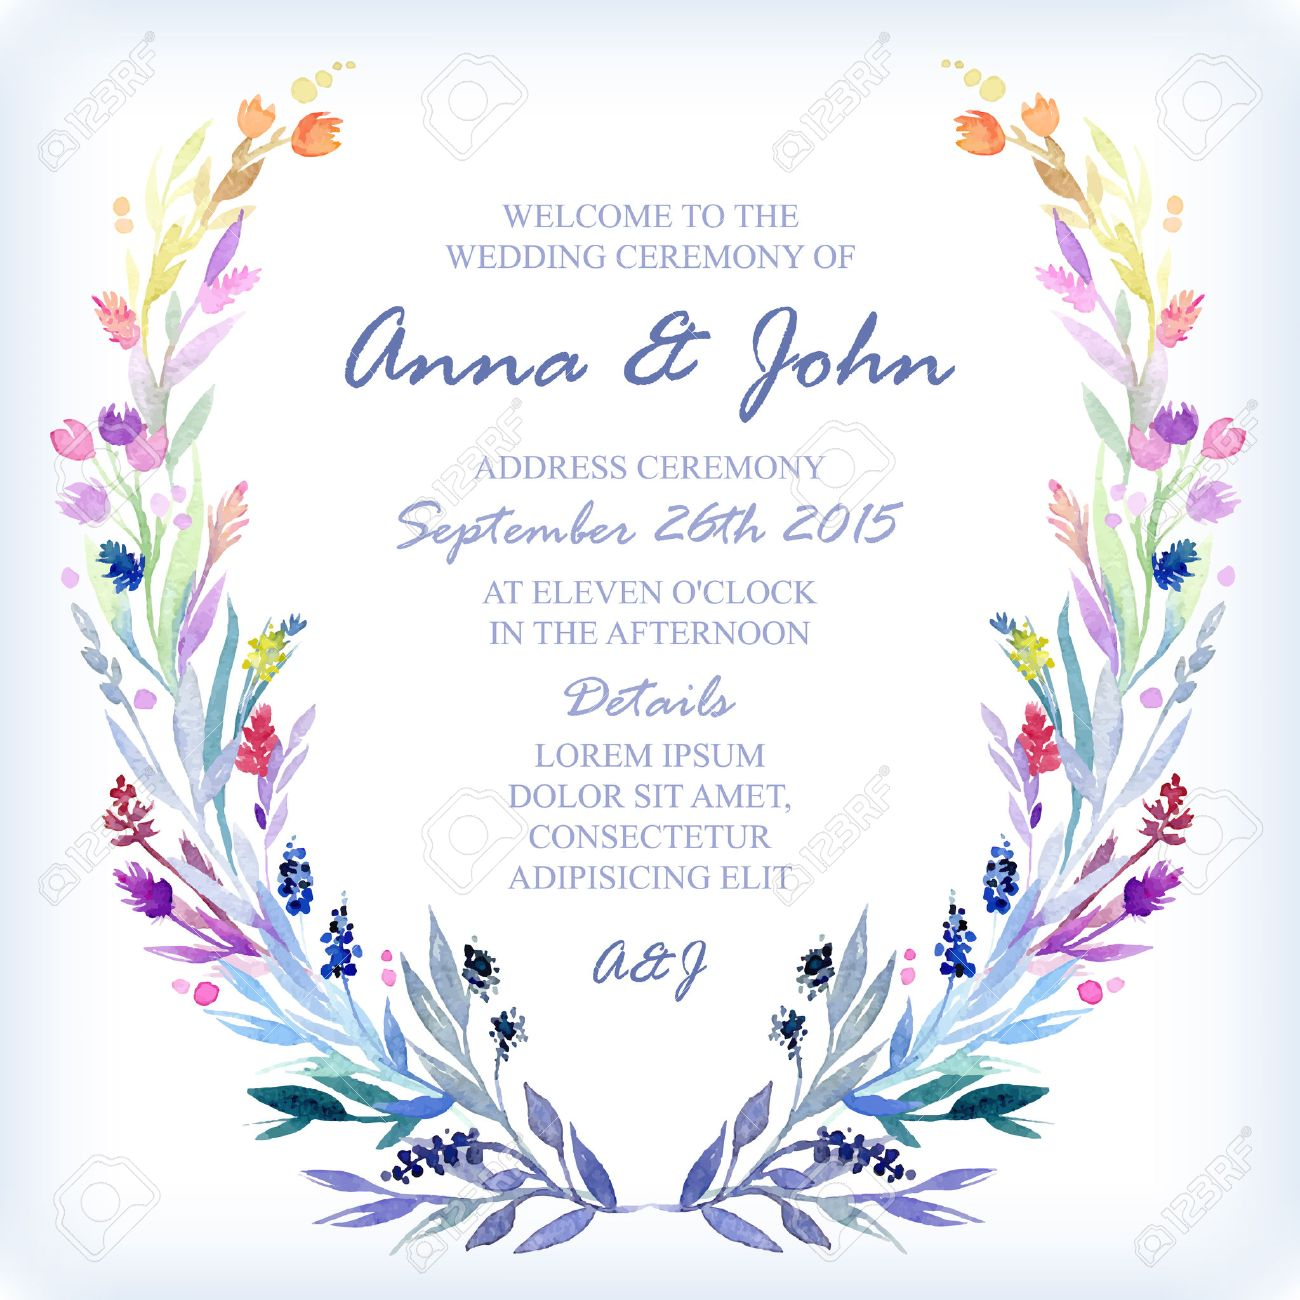 Wedding Invitation Design Template With Watercolor Floral Frame